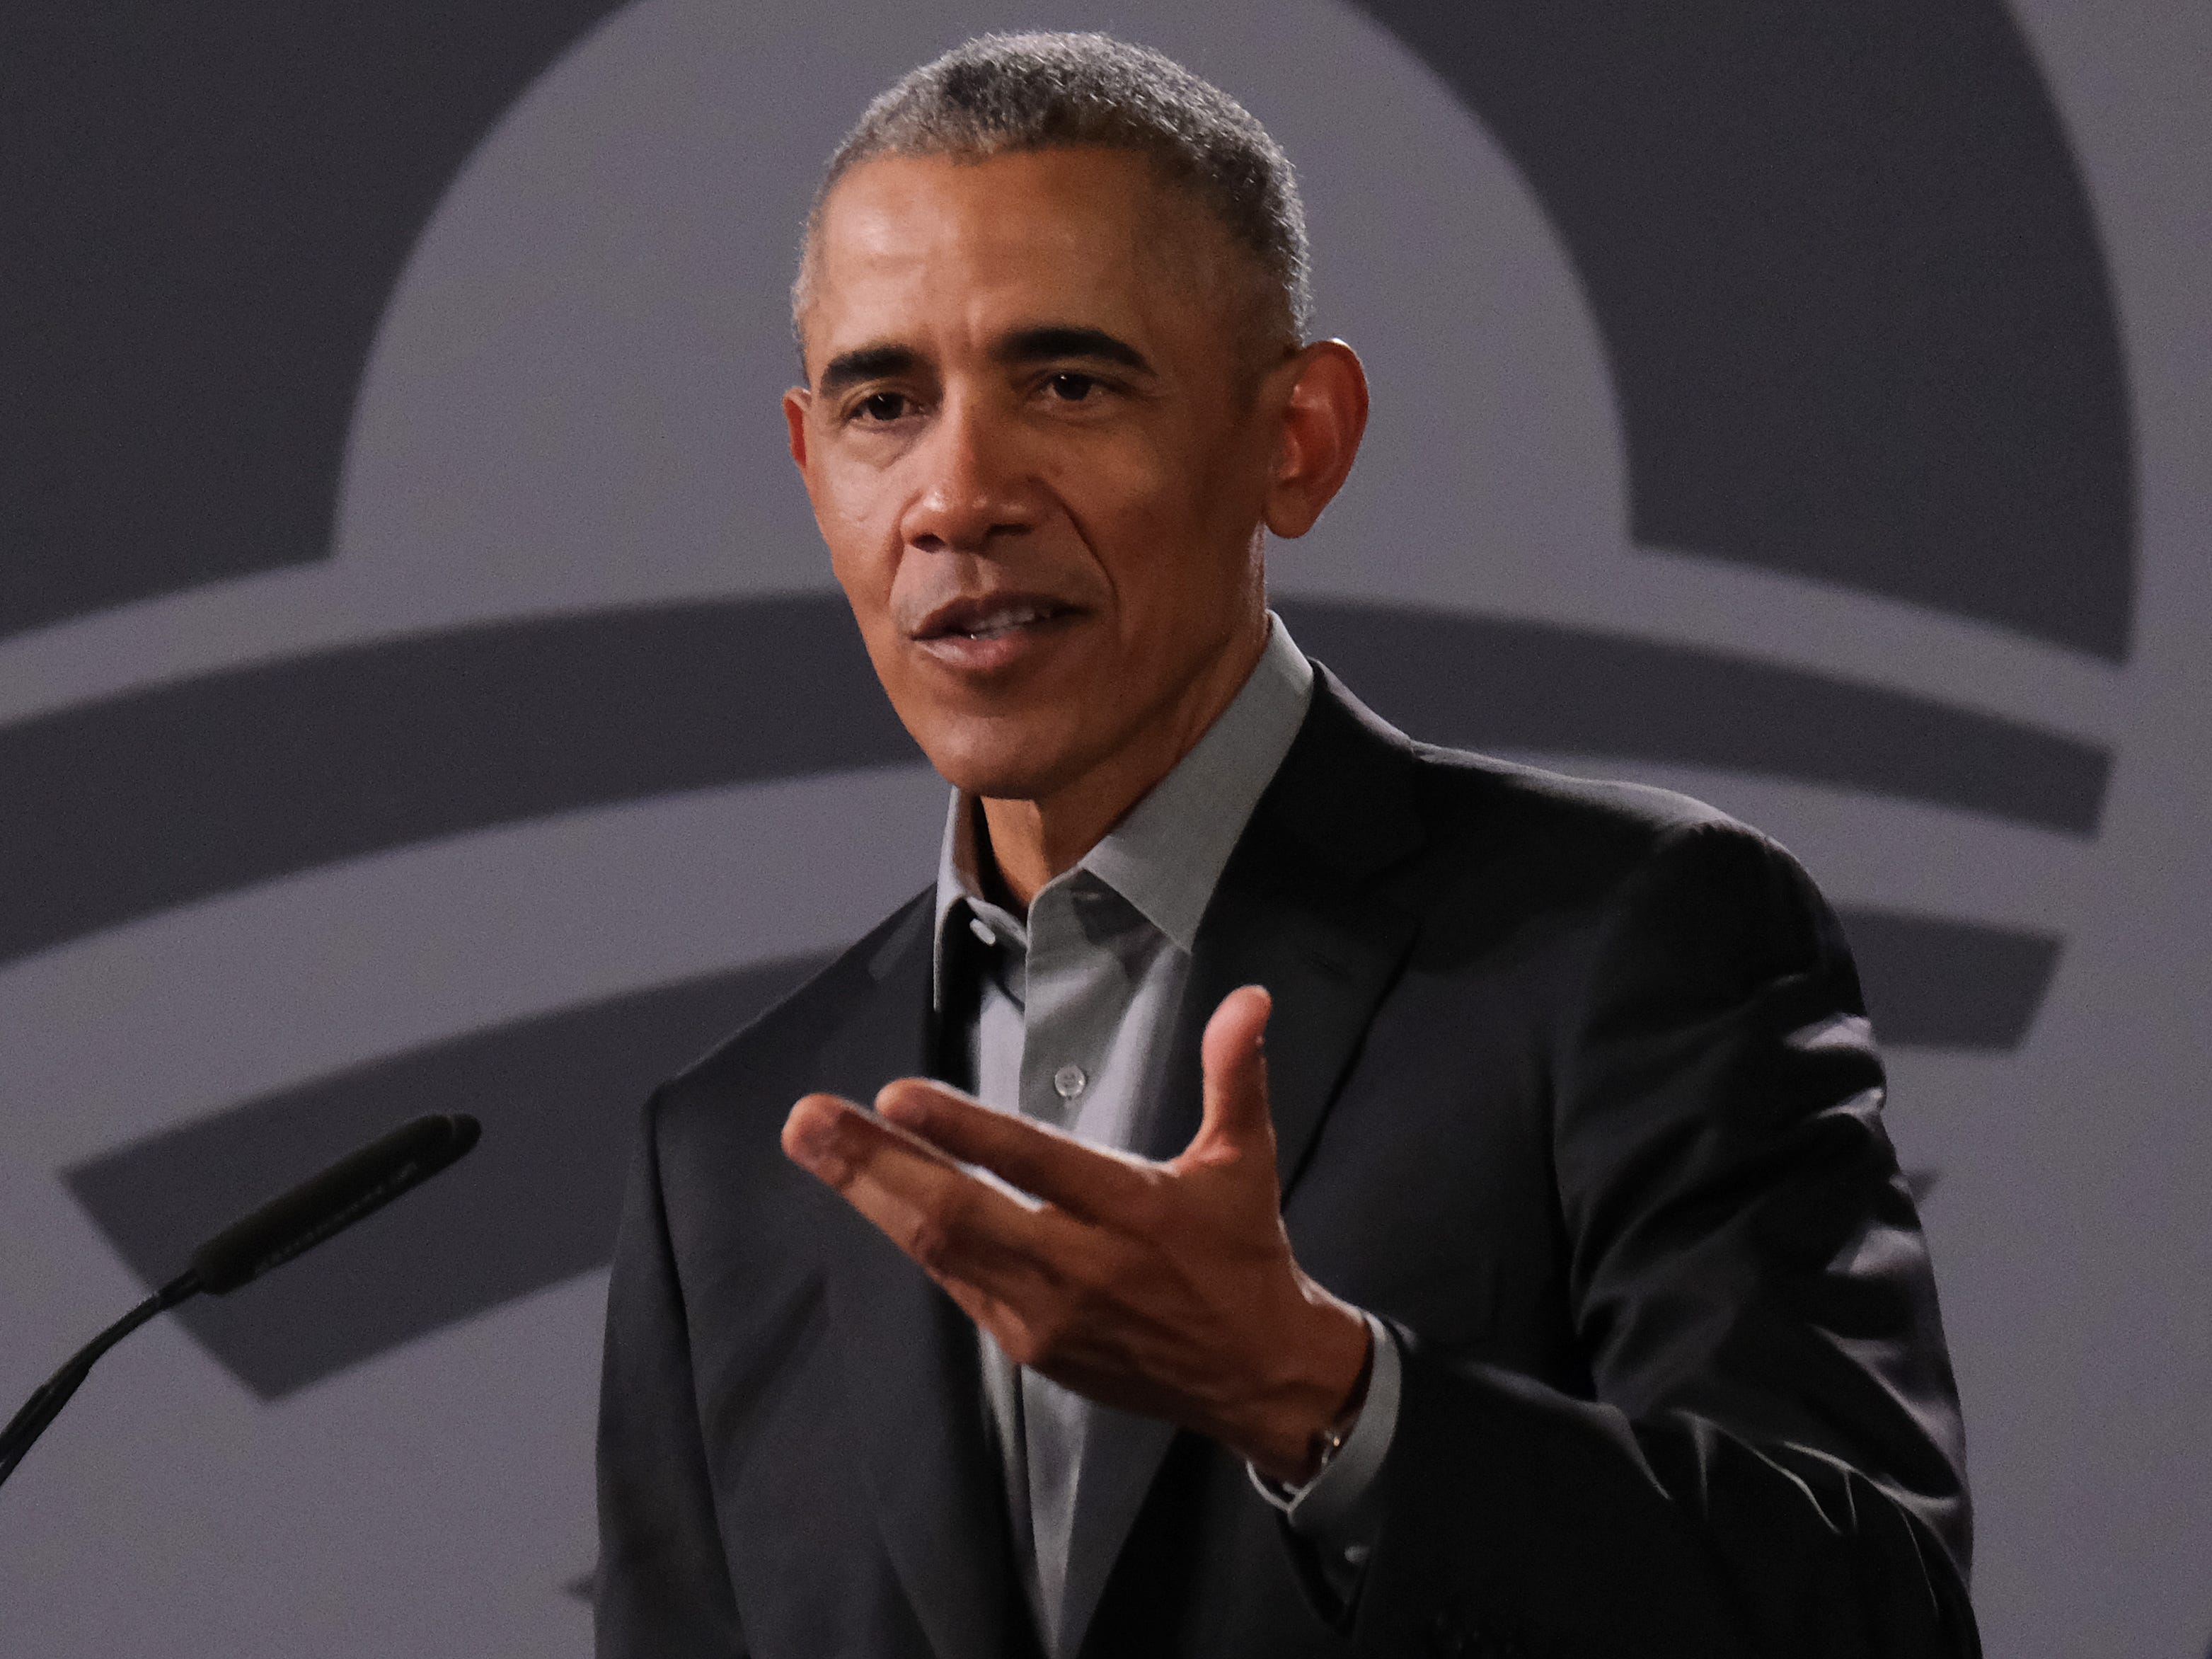 Obama warns Democrats that ideological 'rigidity' can lead to a 'circular firing squad'